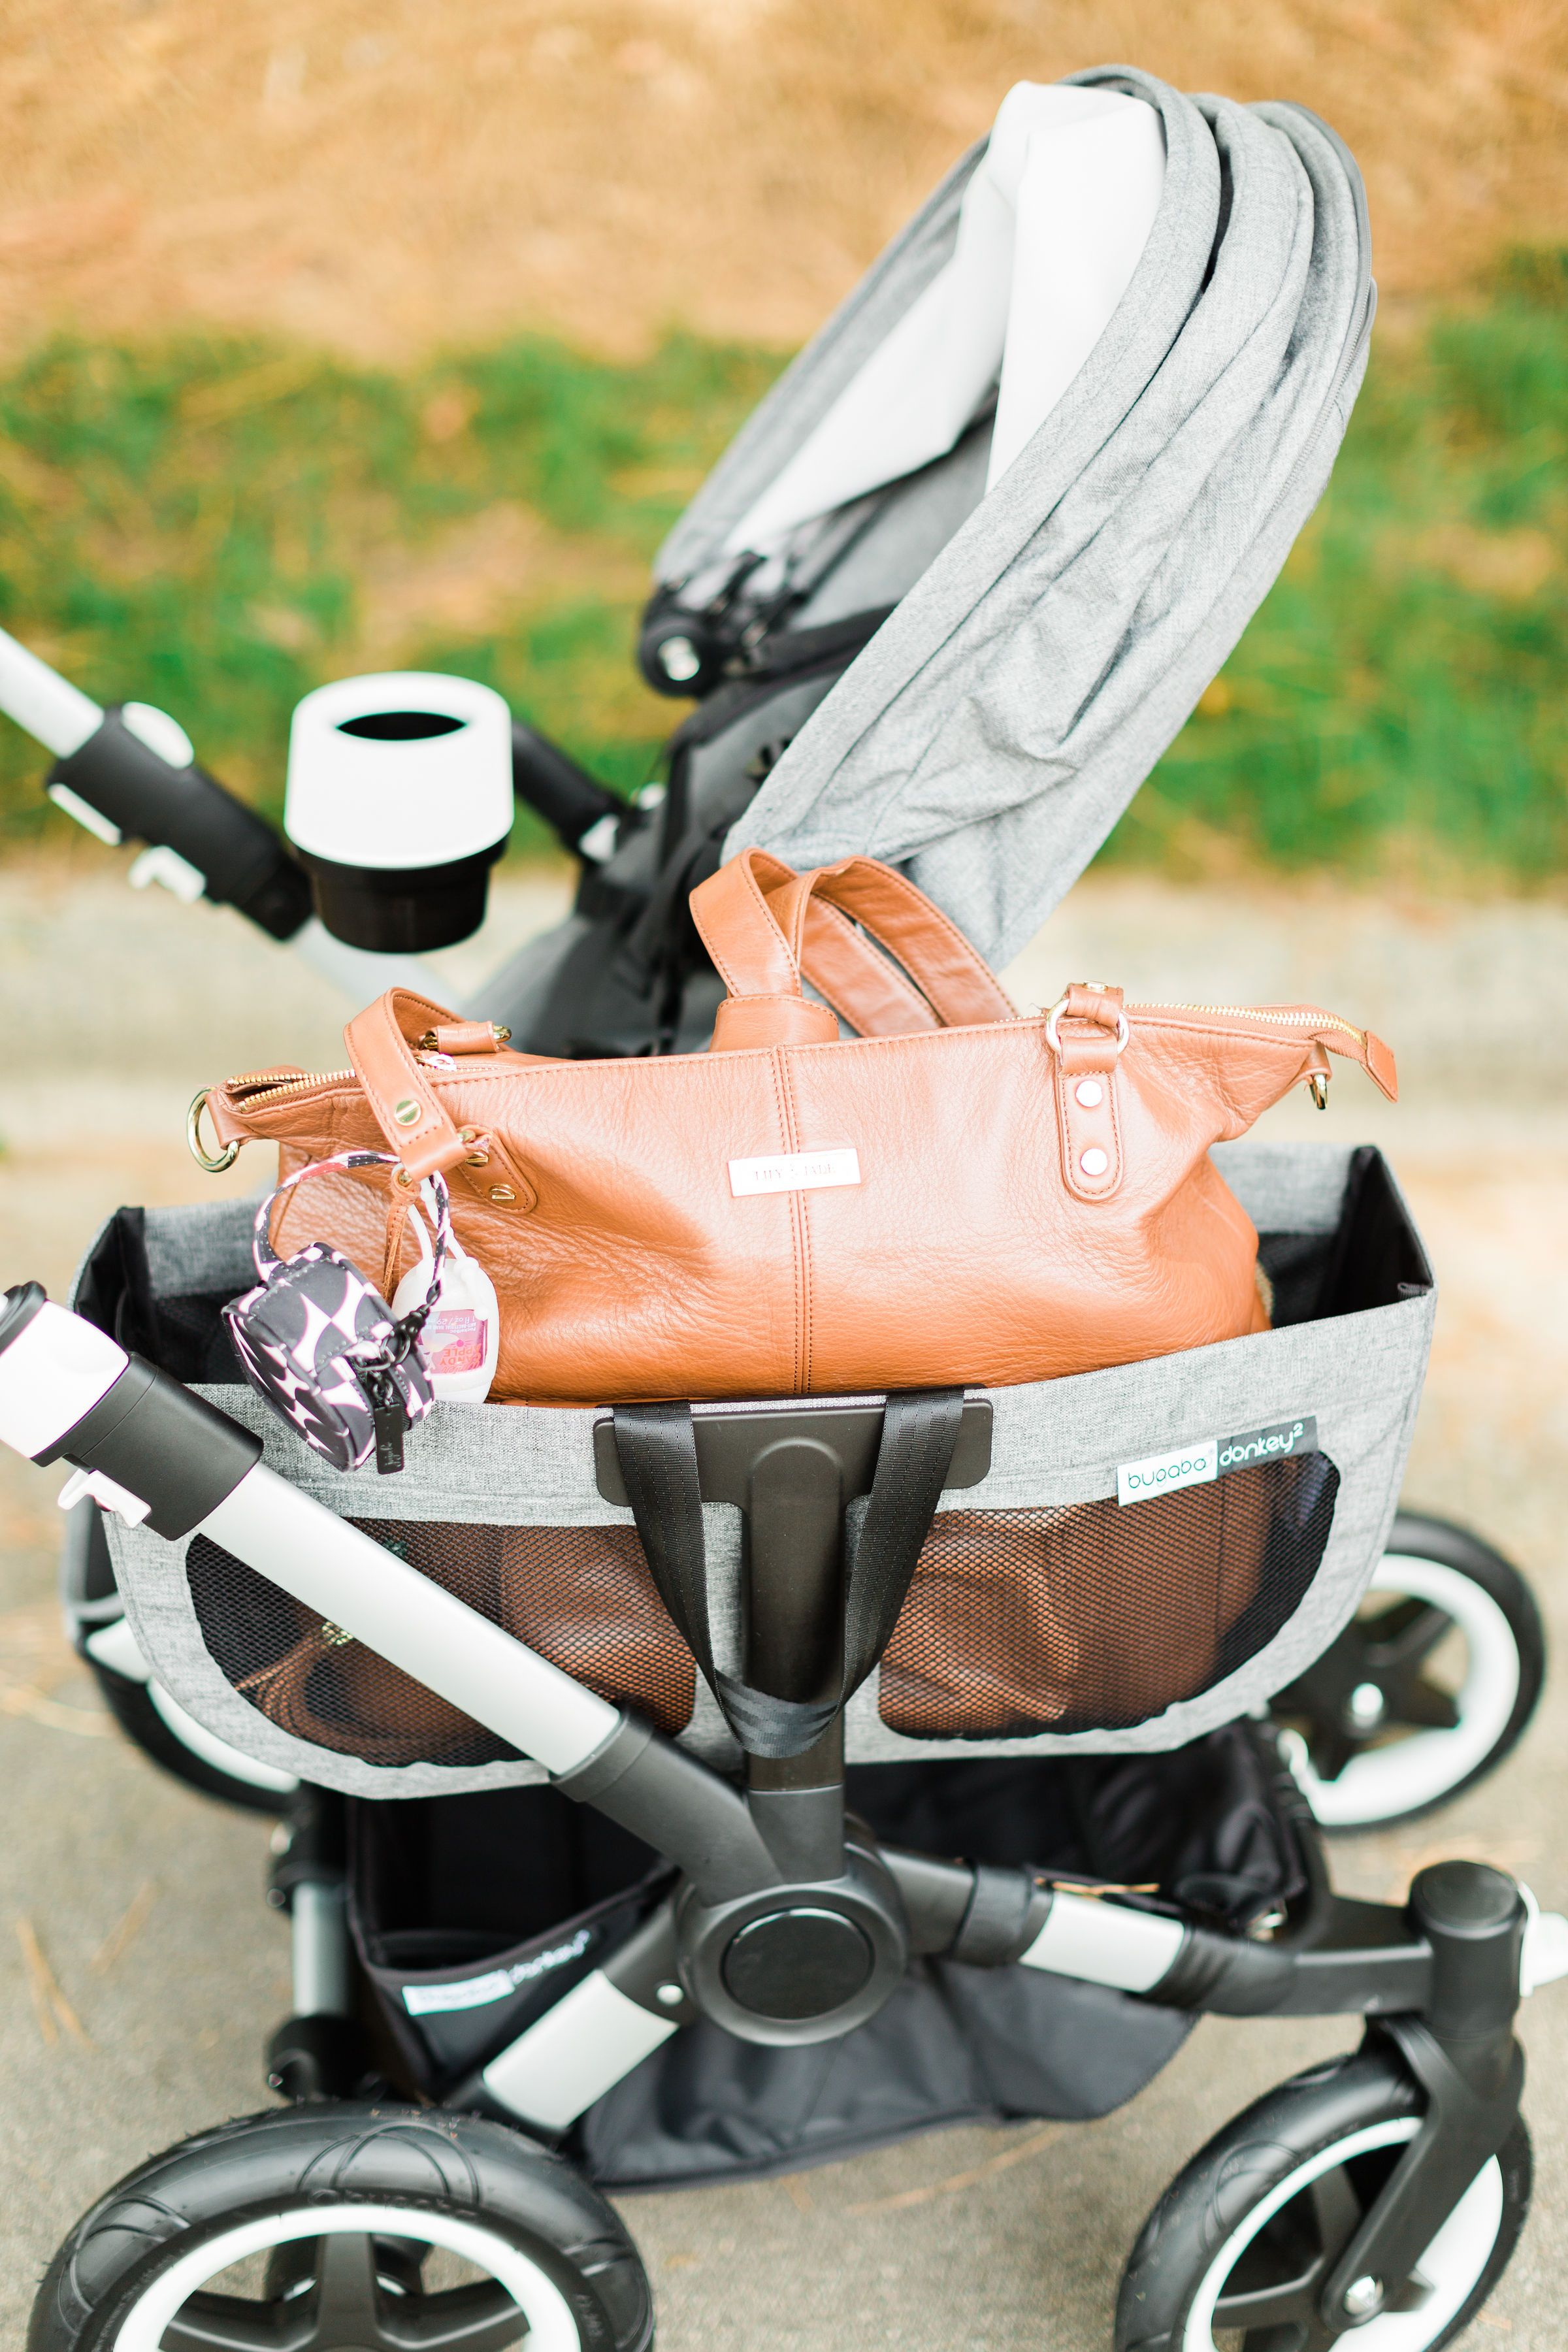 Our Review Of The All New Bugaboo Donkey2 Stroller Glitter Inc In 2020 Bugaboo Stroller Stroller Reviews Stroller